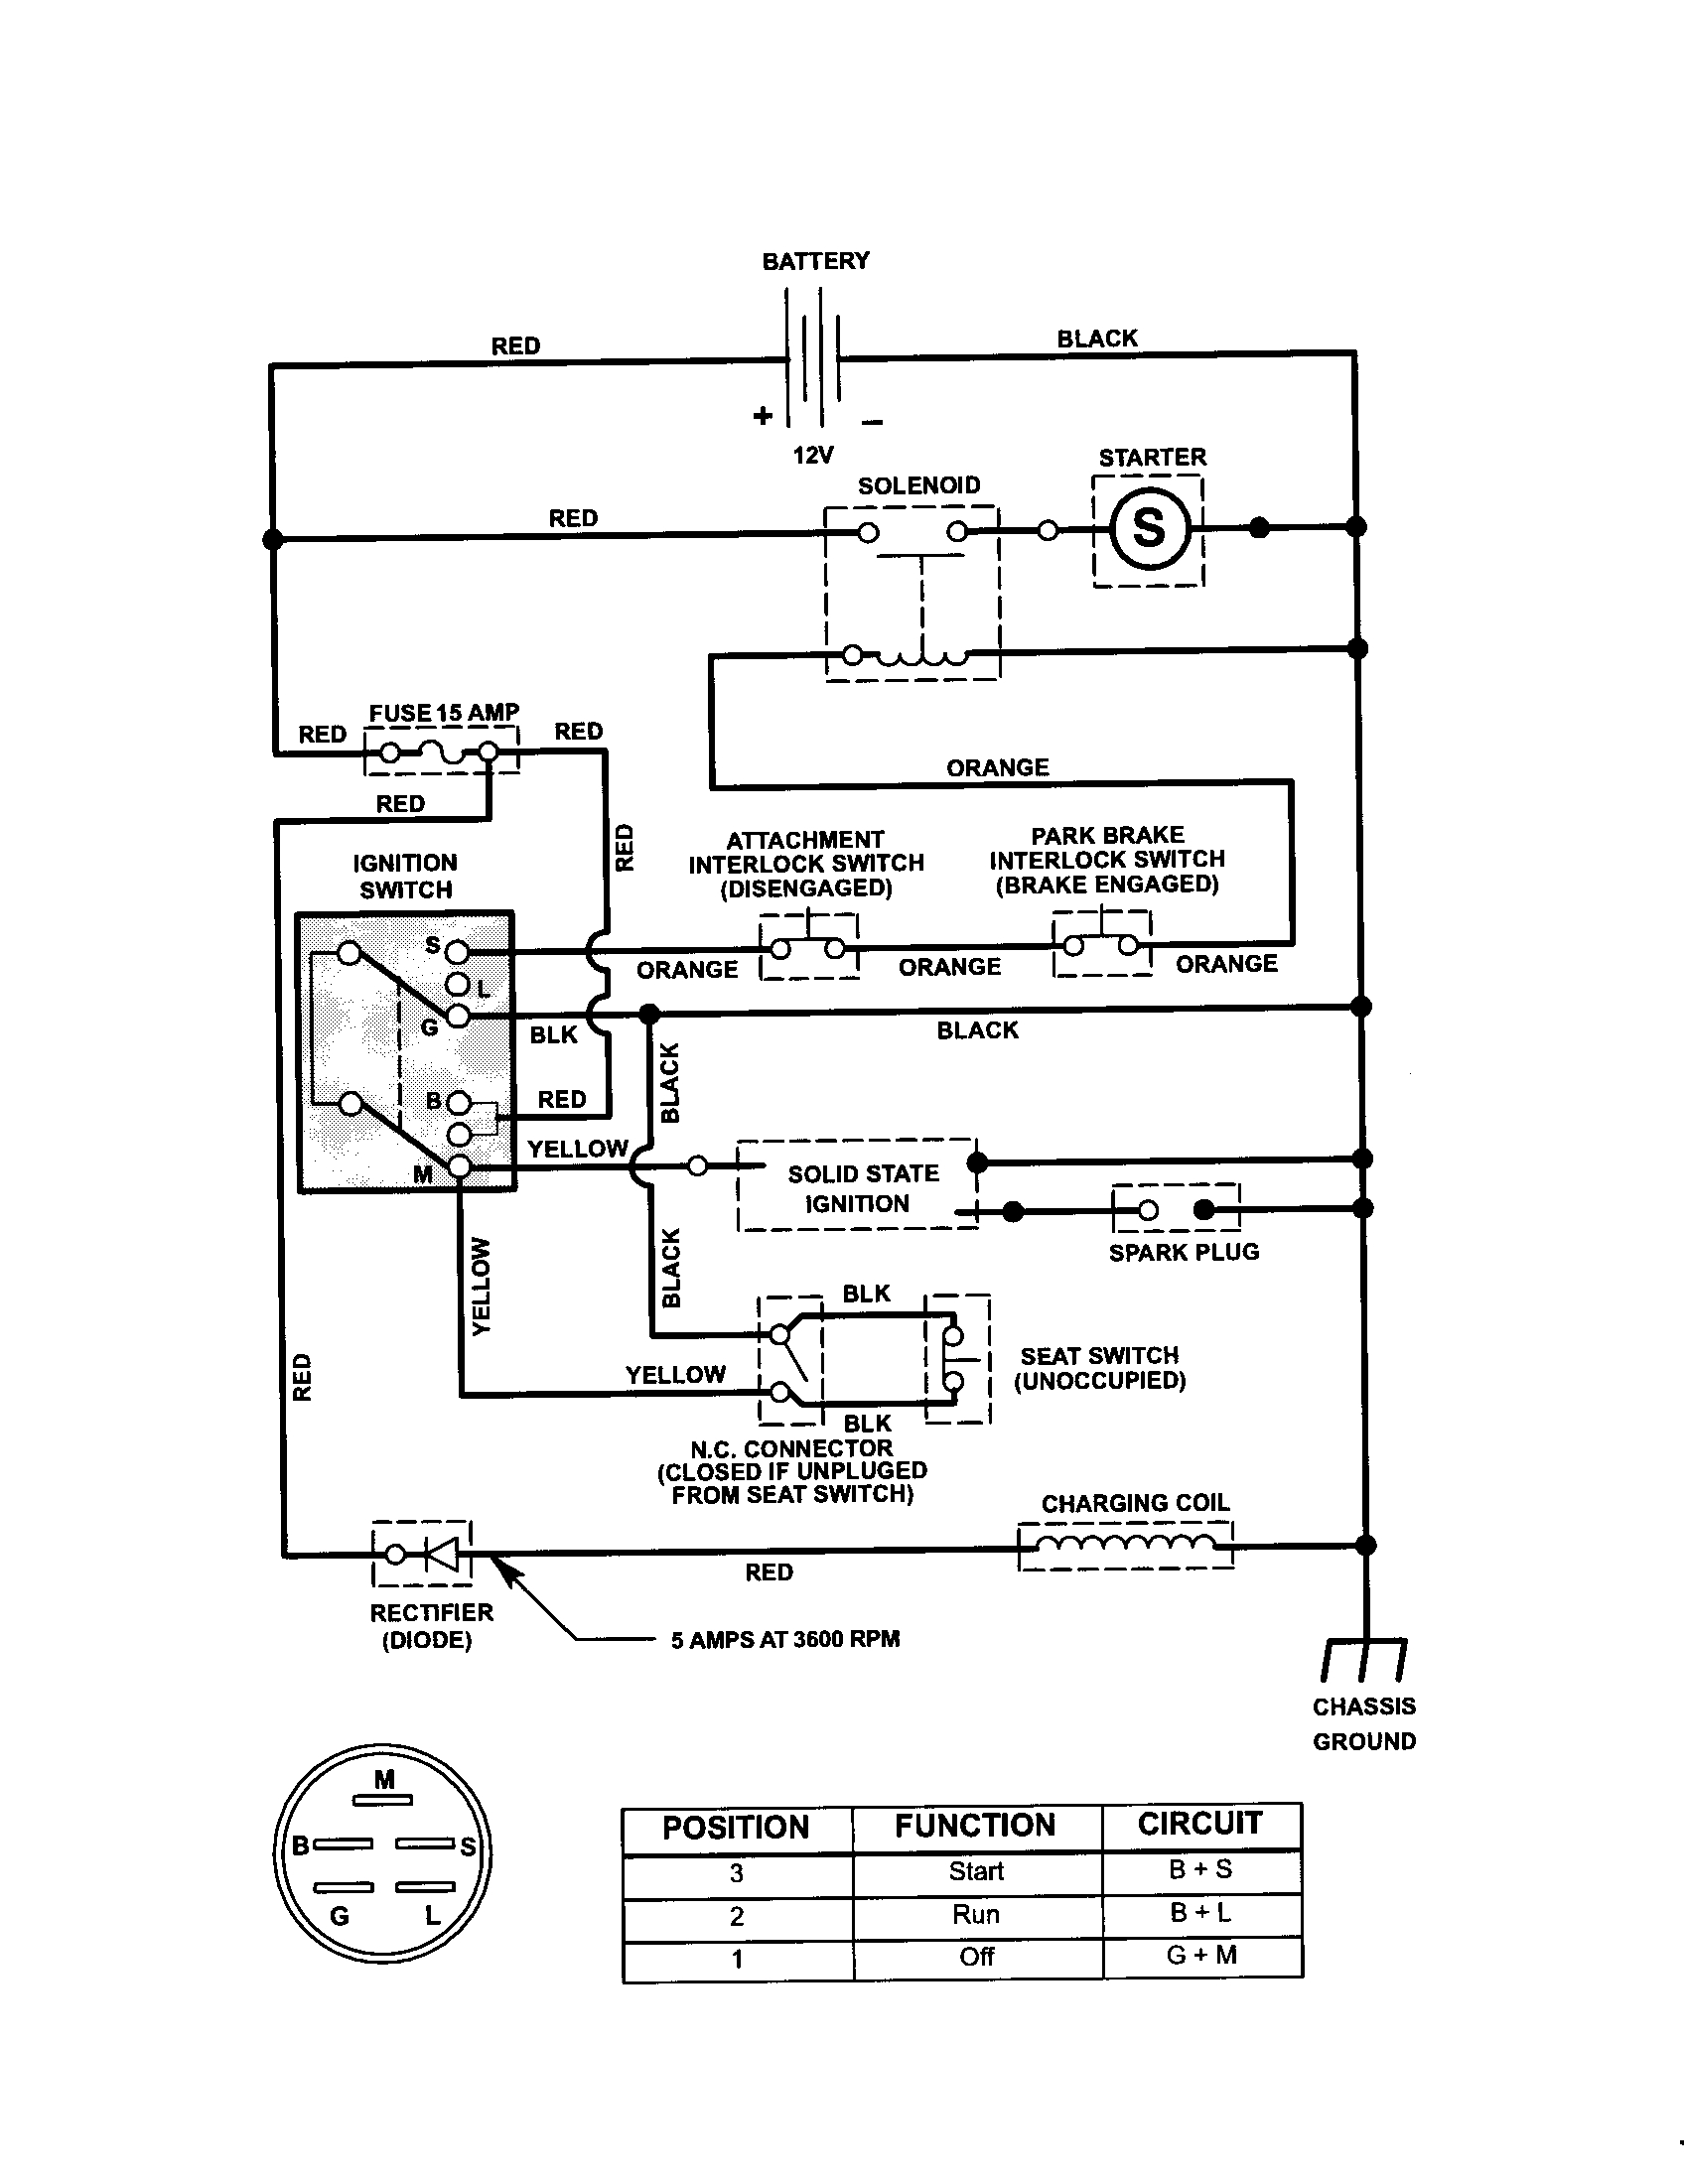 Craftsman Riding Mower Electrical Diagram | Pictures Of Craftsman - Kohler Engine Wiring Diagram